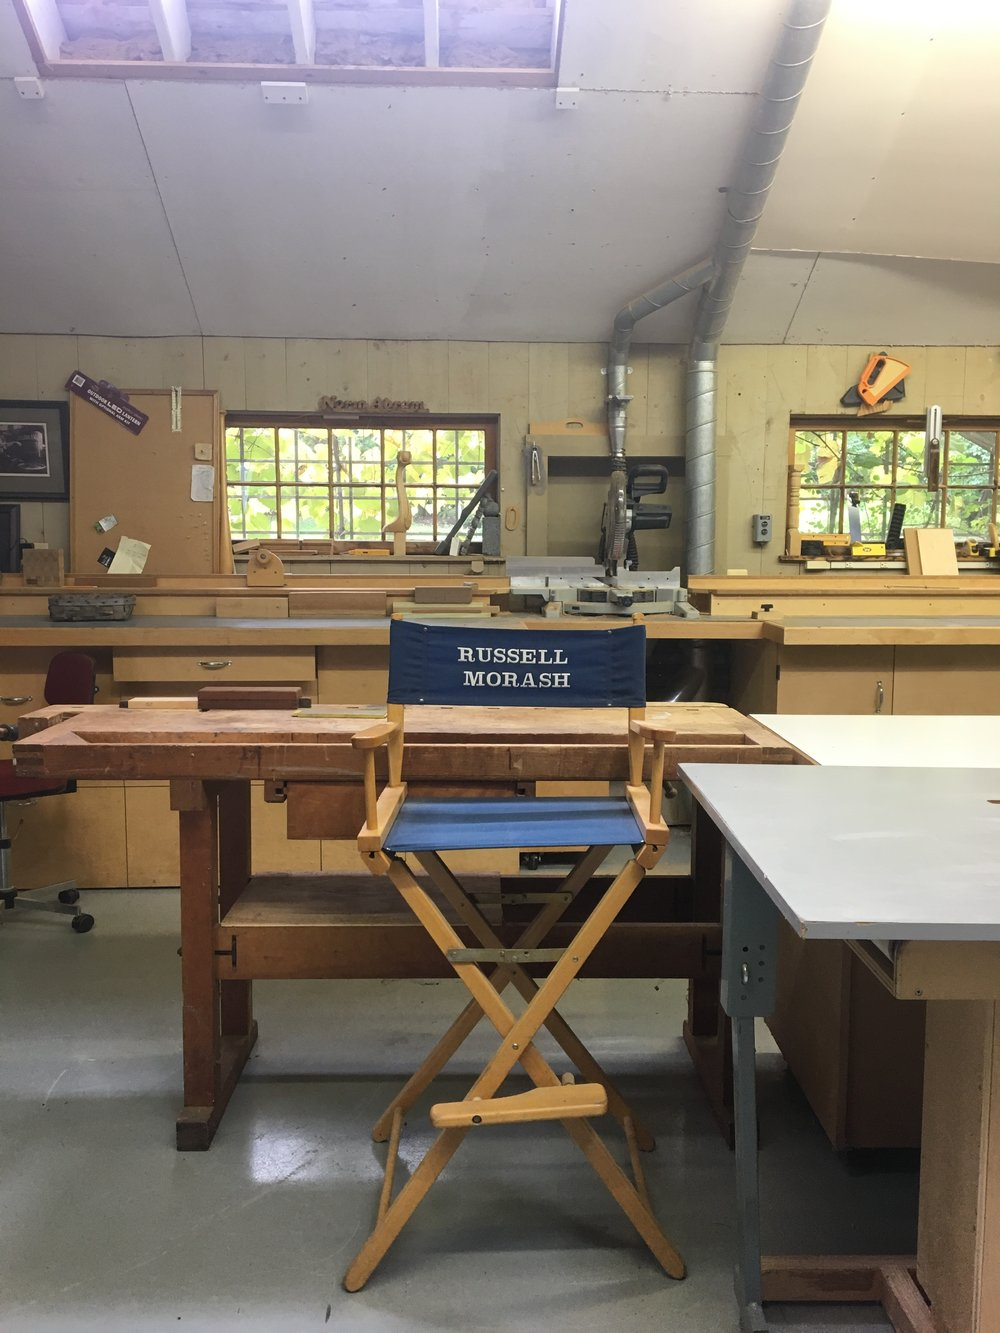 Russell Morash's director's chair with Norm Abrams' nameplate above the window. (Photo by author).